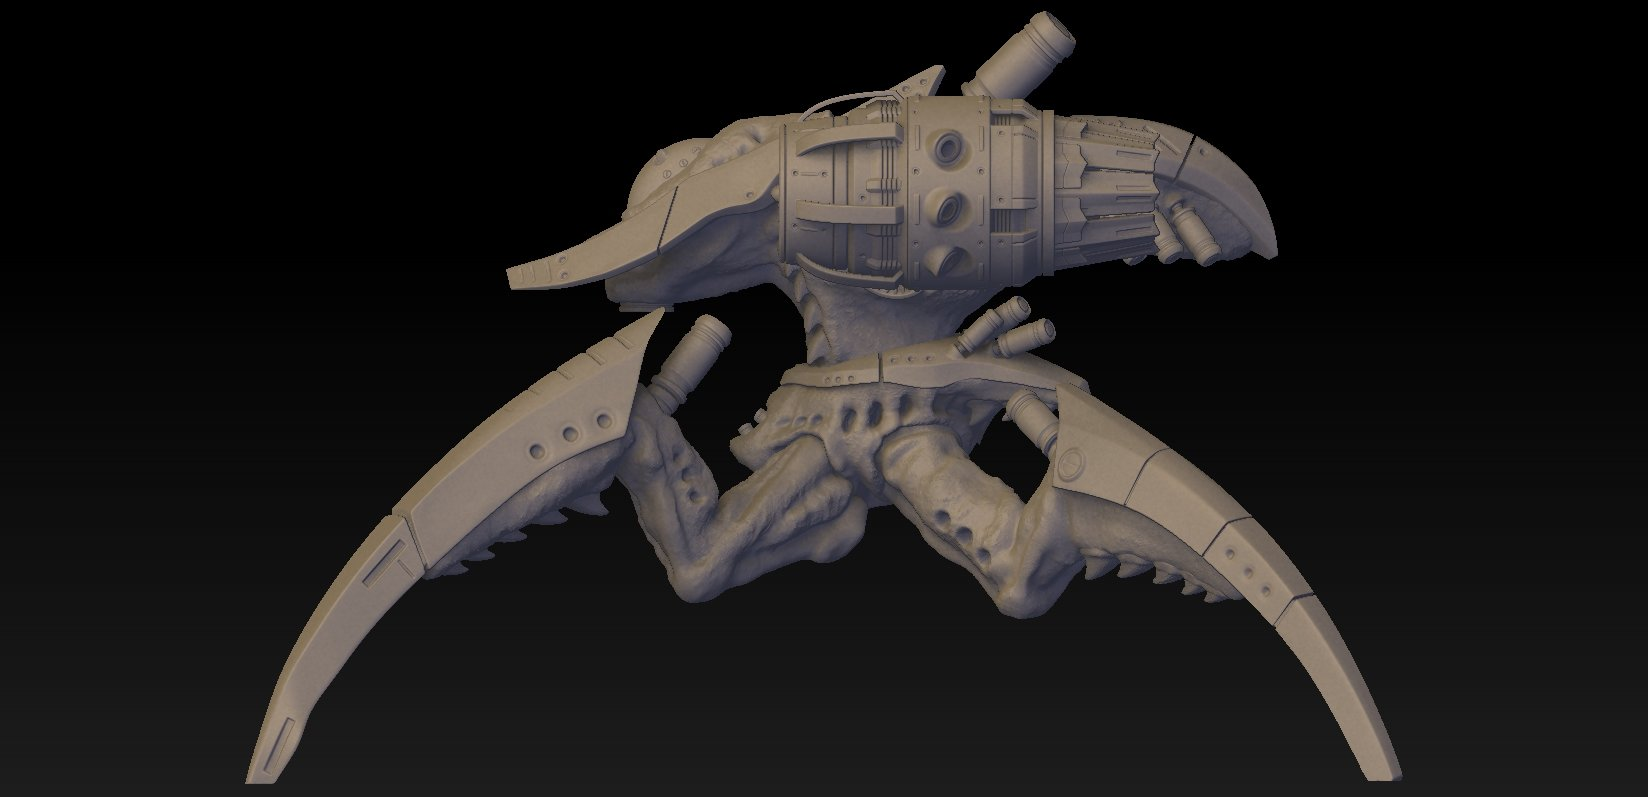 Thomas woodward zbrush document18